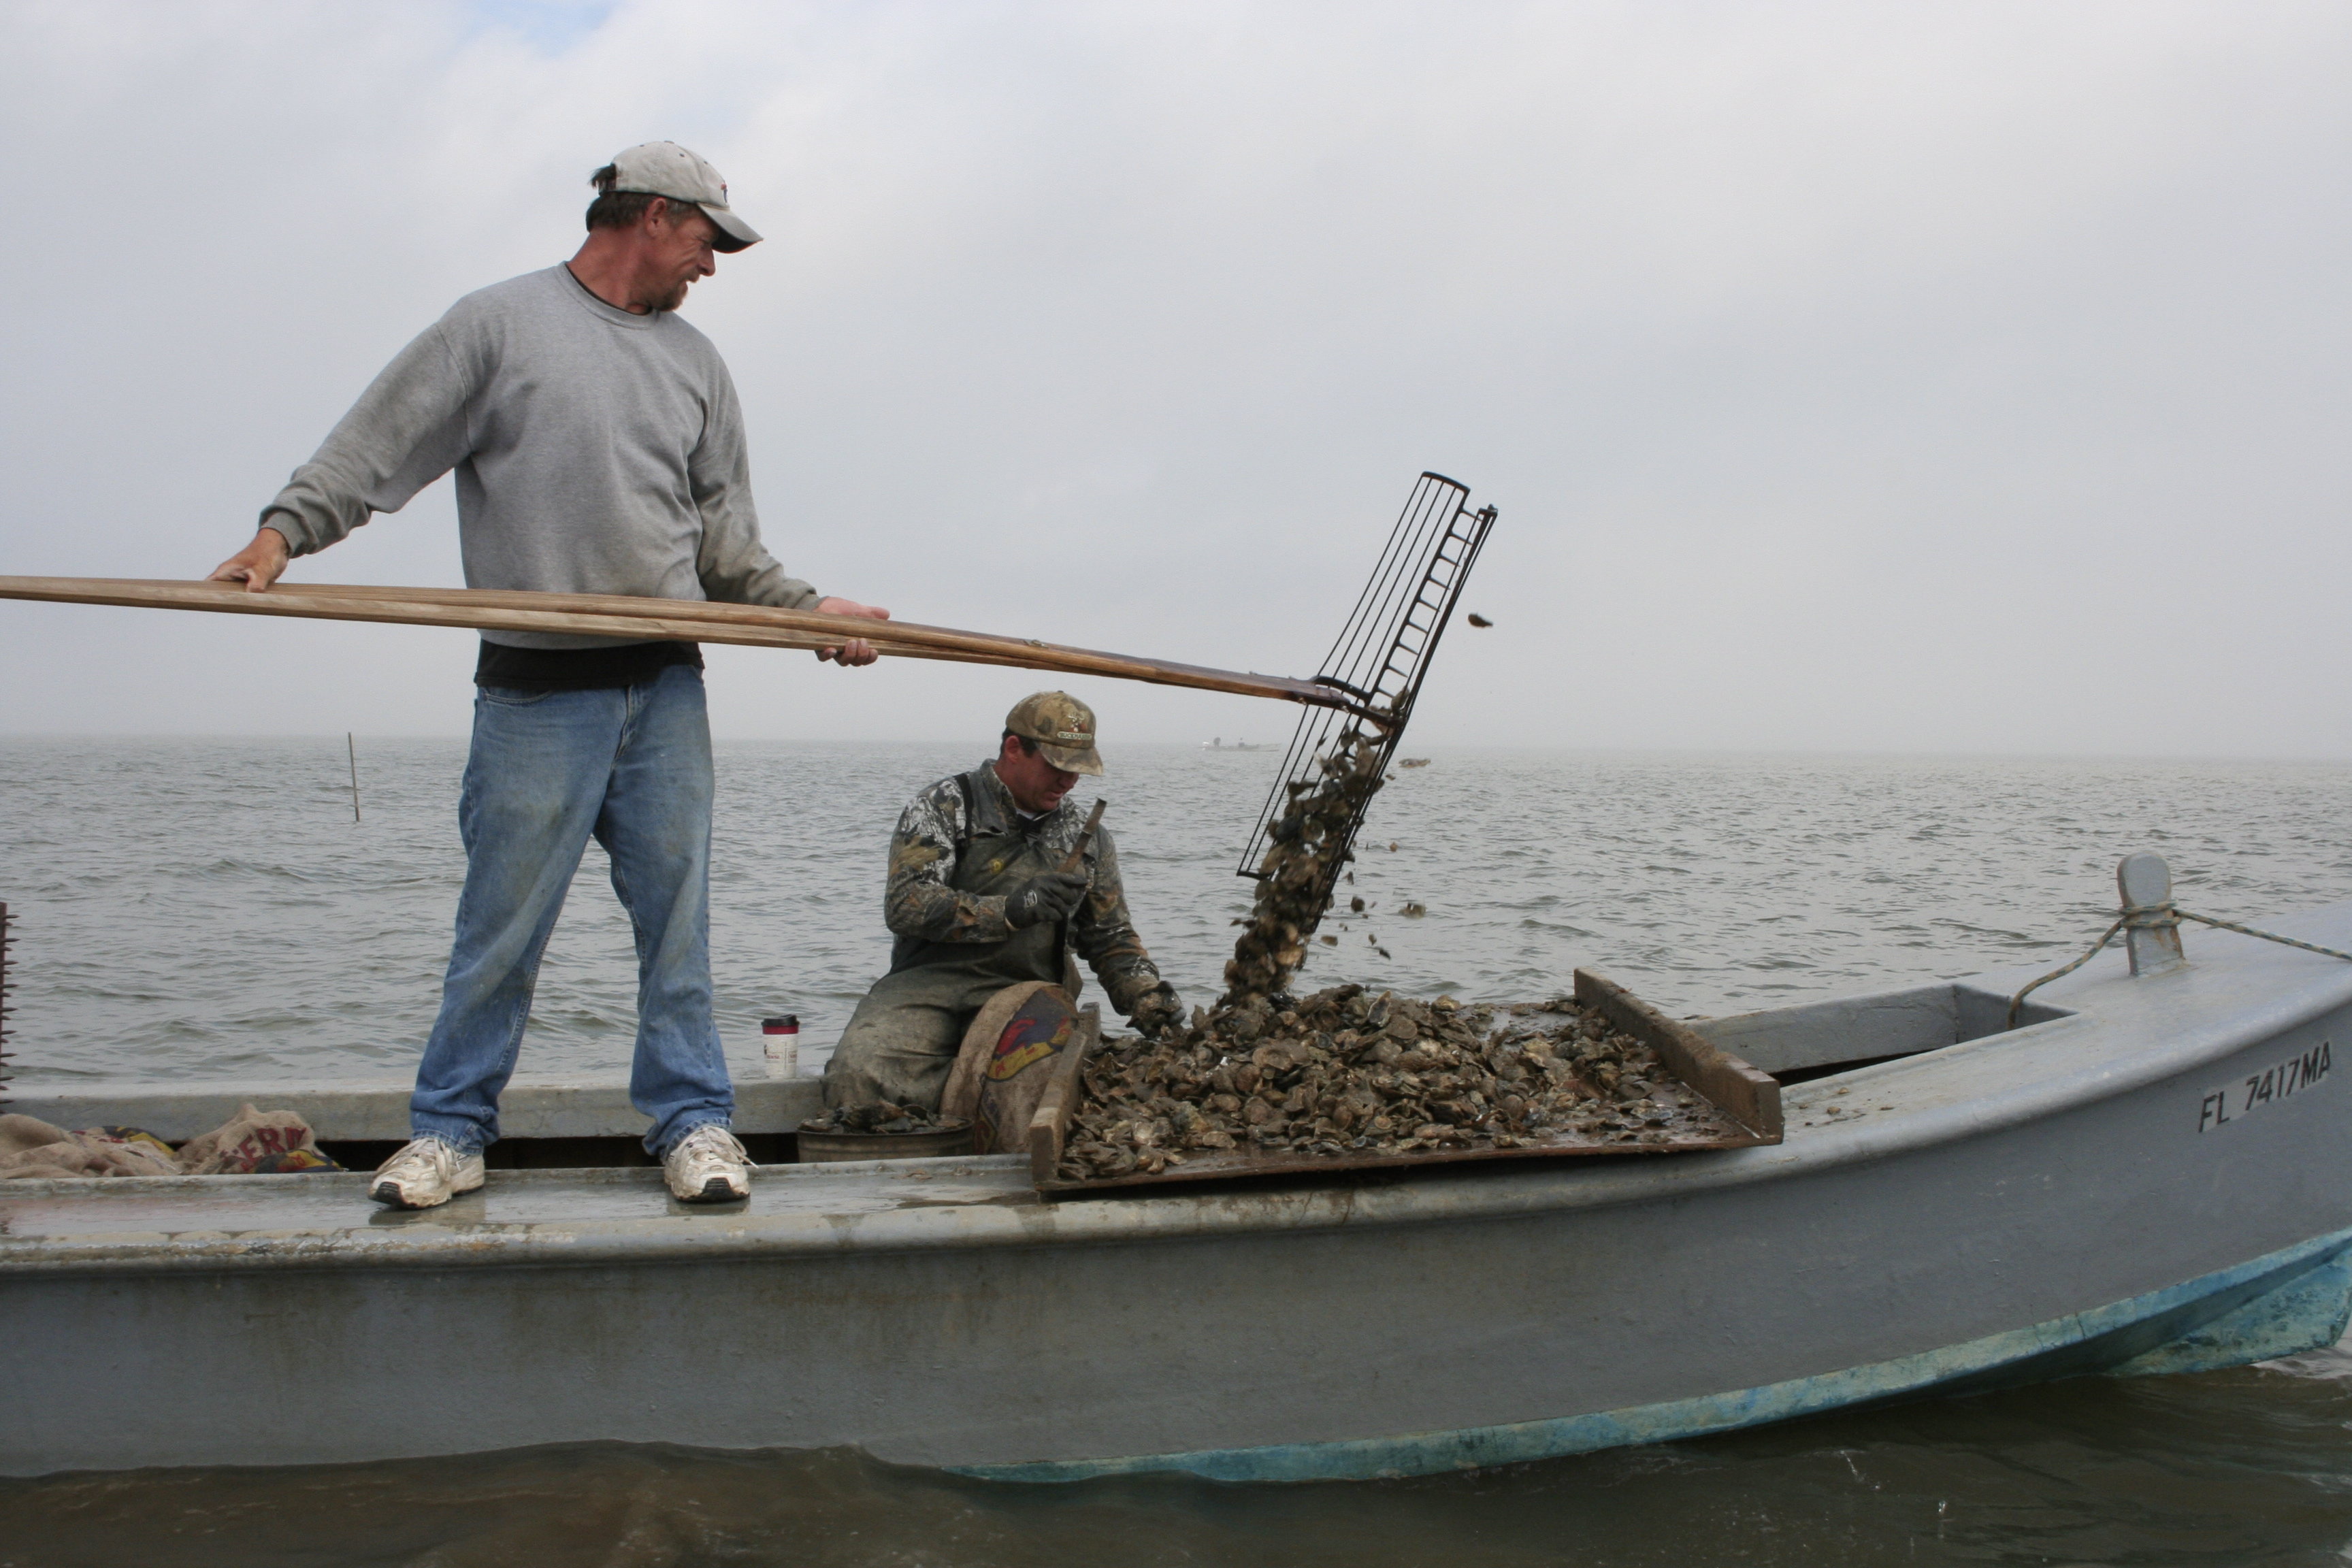 Two fishermen oystering in Apalachicola Bay.